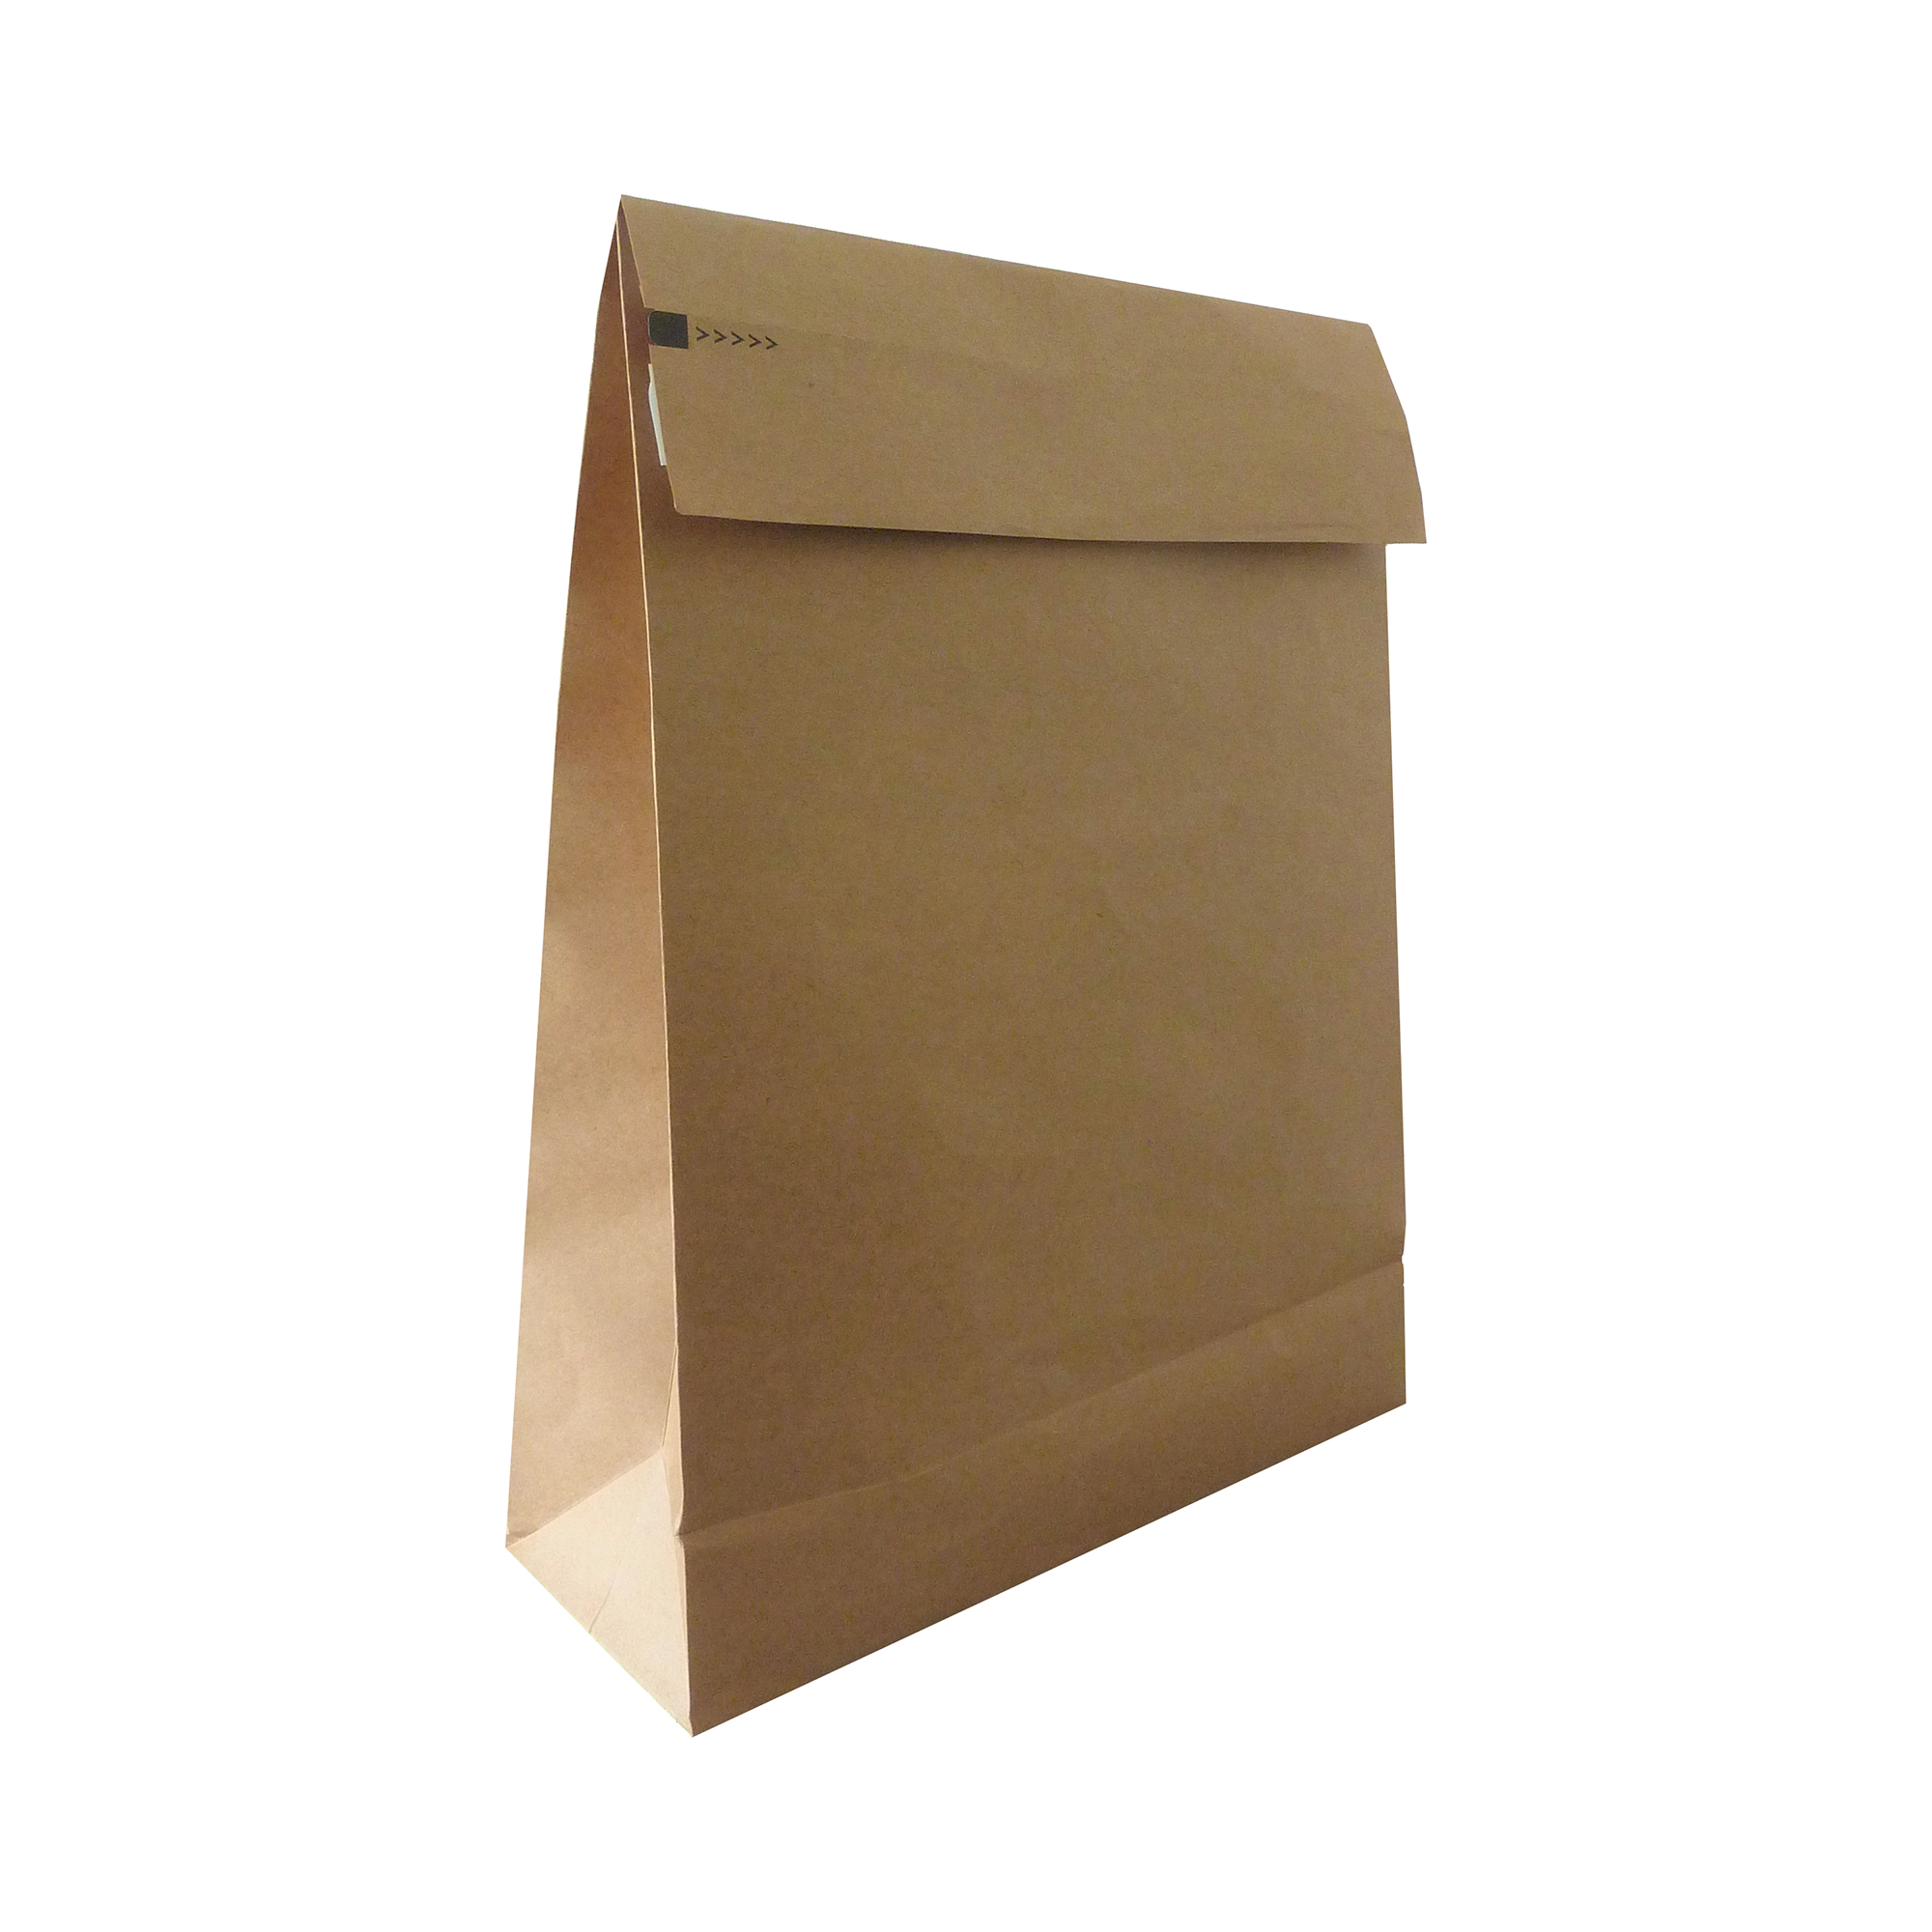 Standard envelopes Kraft Mlr Eco Expanding Block Btm & Side Gusset Dbl P&S 400x500x100mm +100 flap Man RefRBL10531 Pack 50